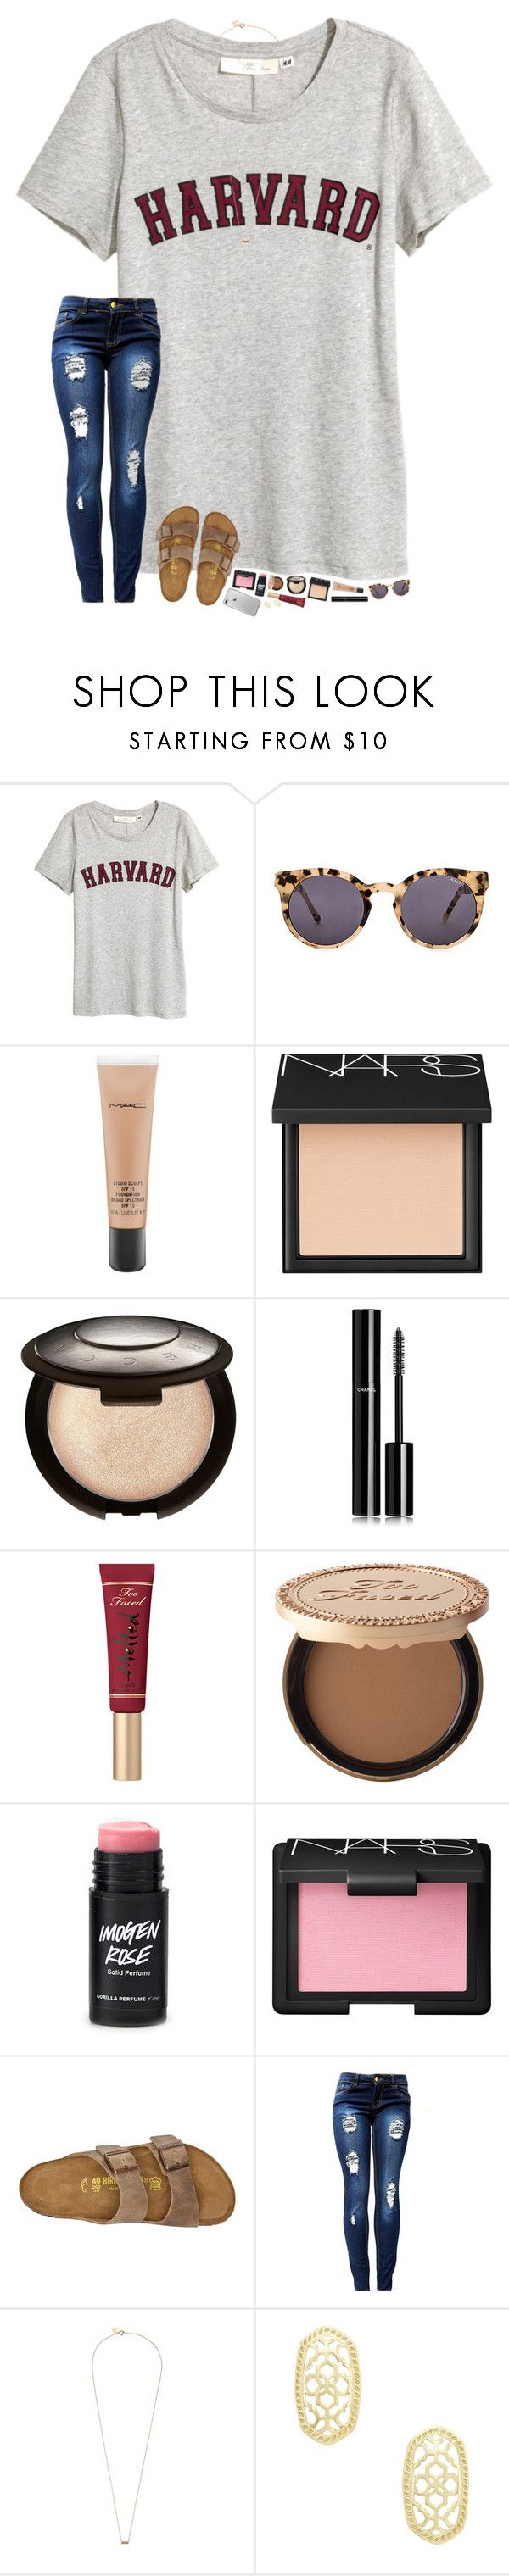 hello exam week! ‍♀️ by hopemarlee ❤ liked on Polyvore featuring Komono, MAC Cosmetics, NARS Cosmetics, Becca, Chanel, Too Faced Cosmetics, Birkenstock, Ginette NY and Kendra Scott